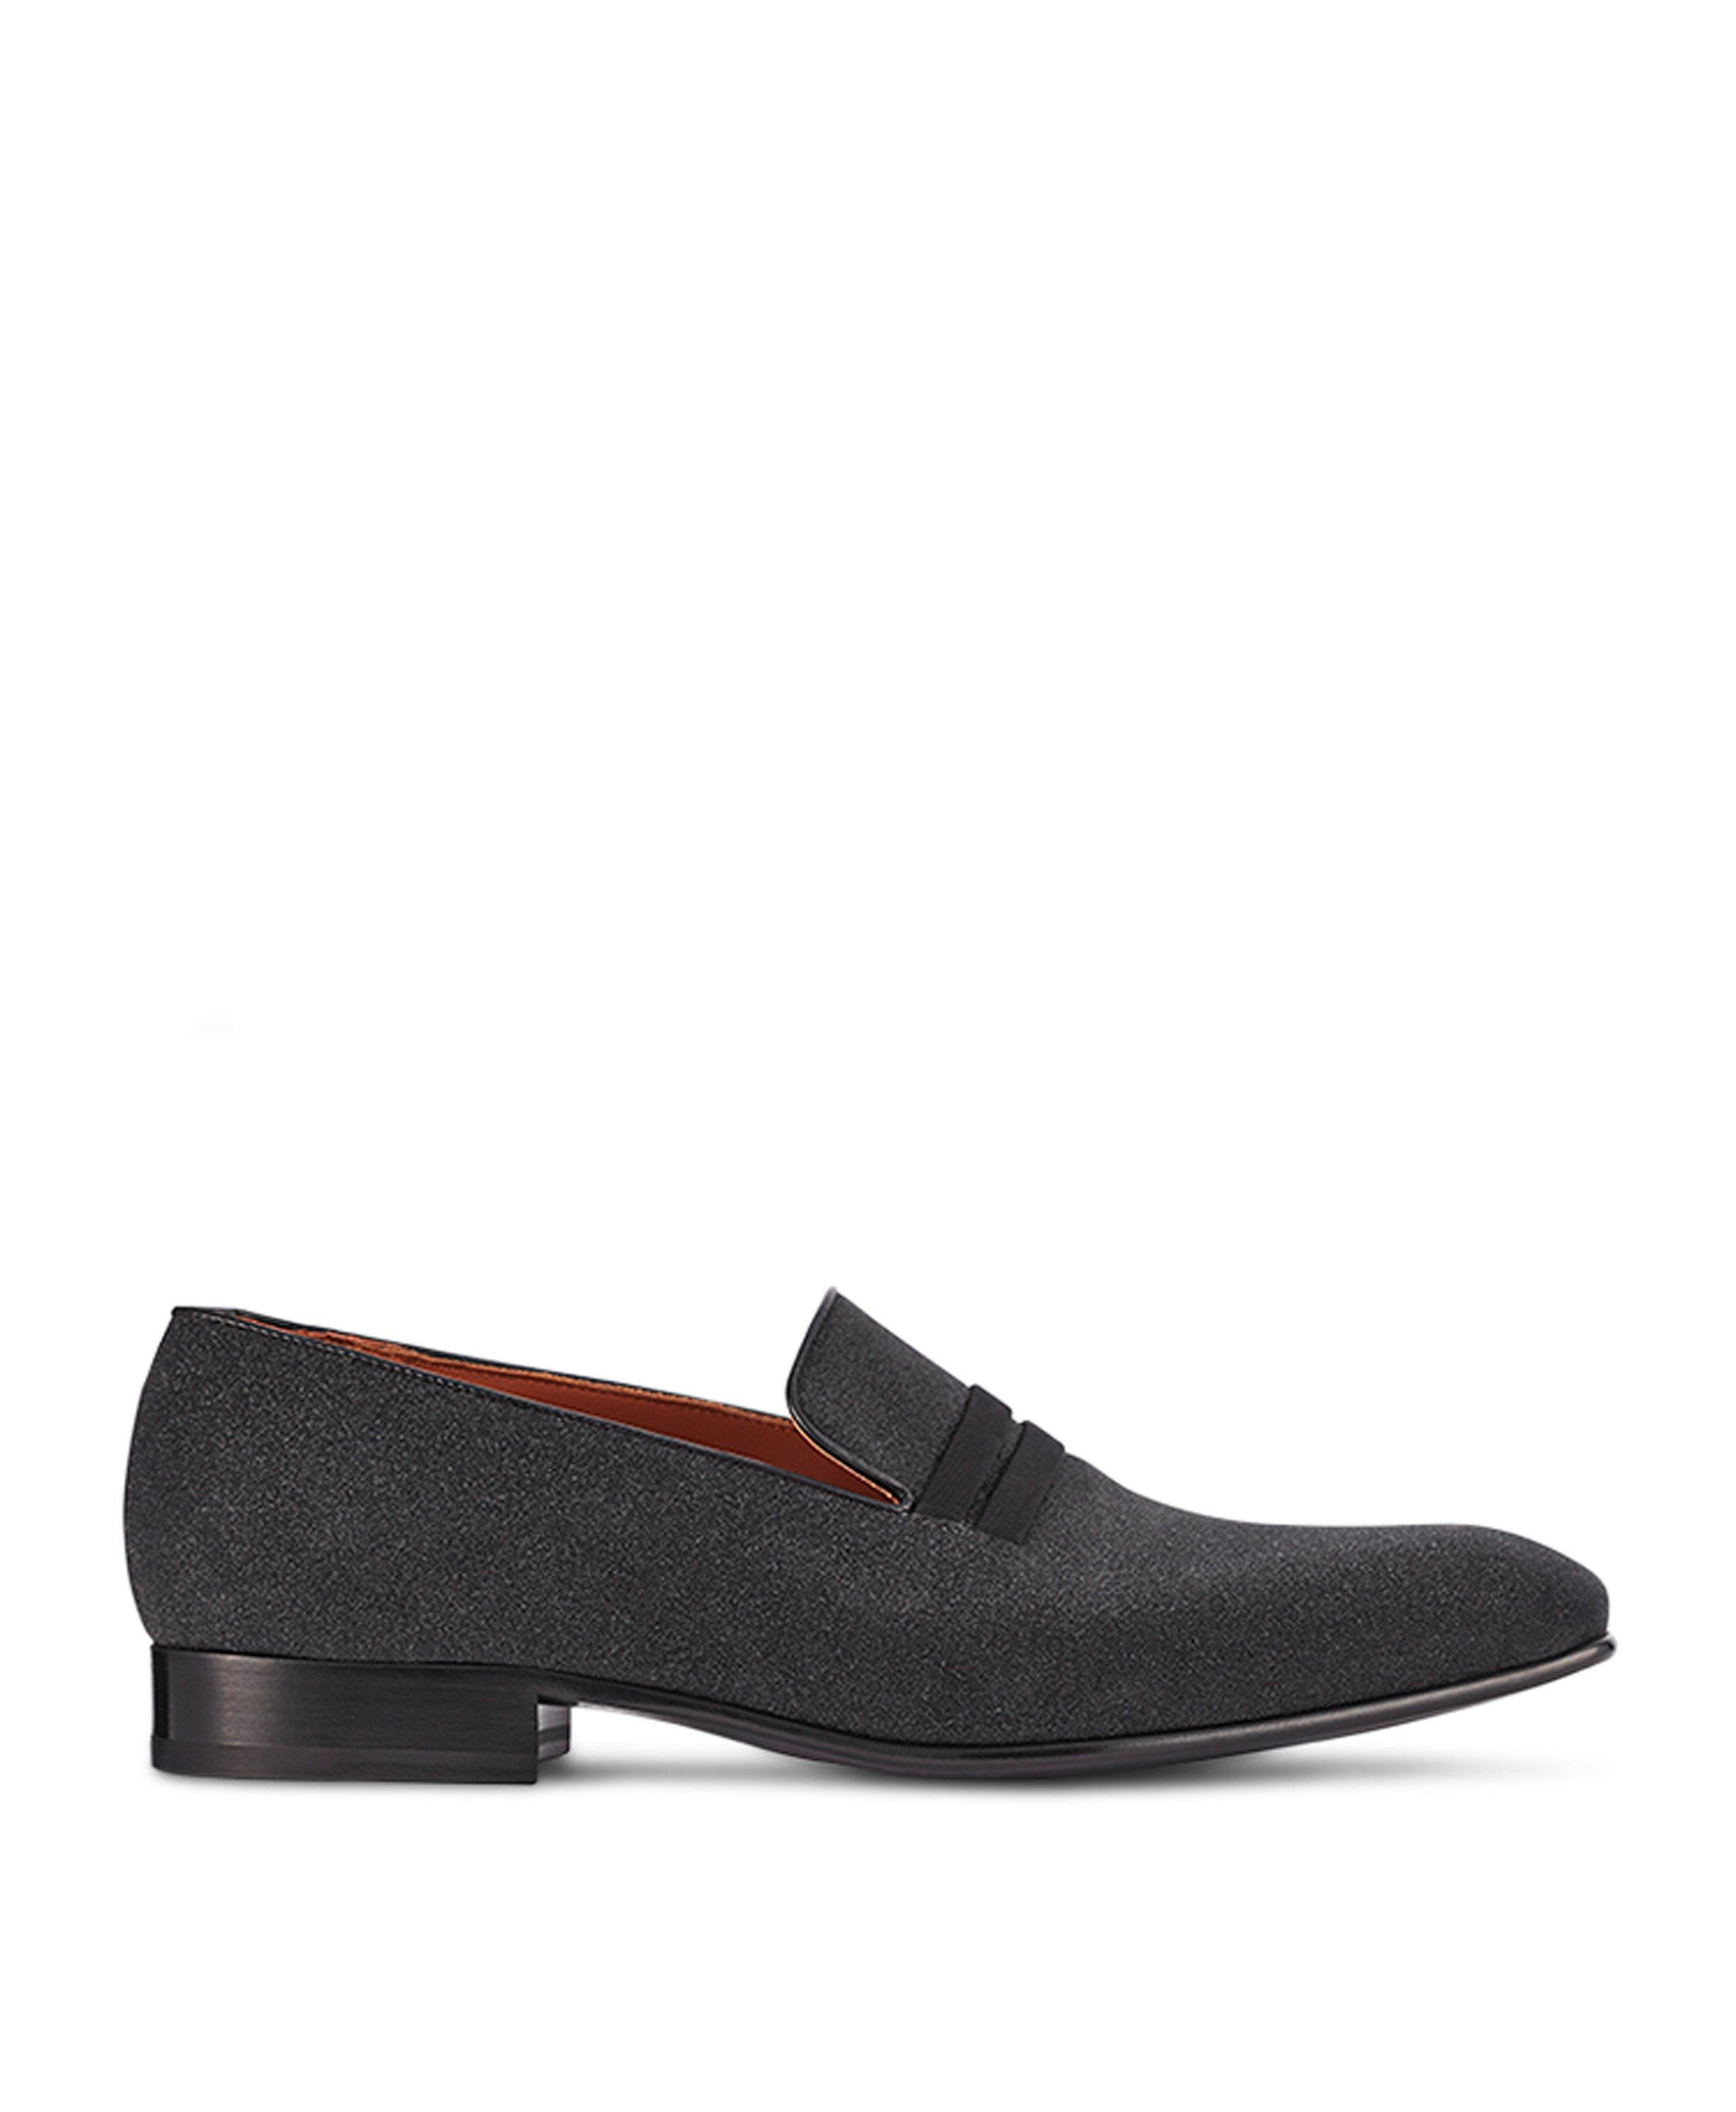 MILES BLACK GLITTER LOAFERS